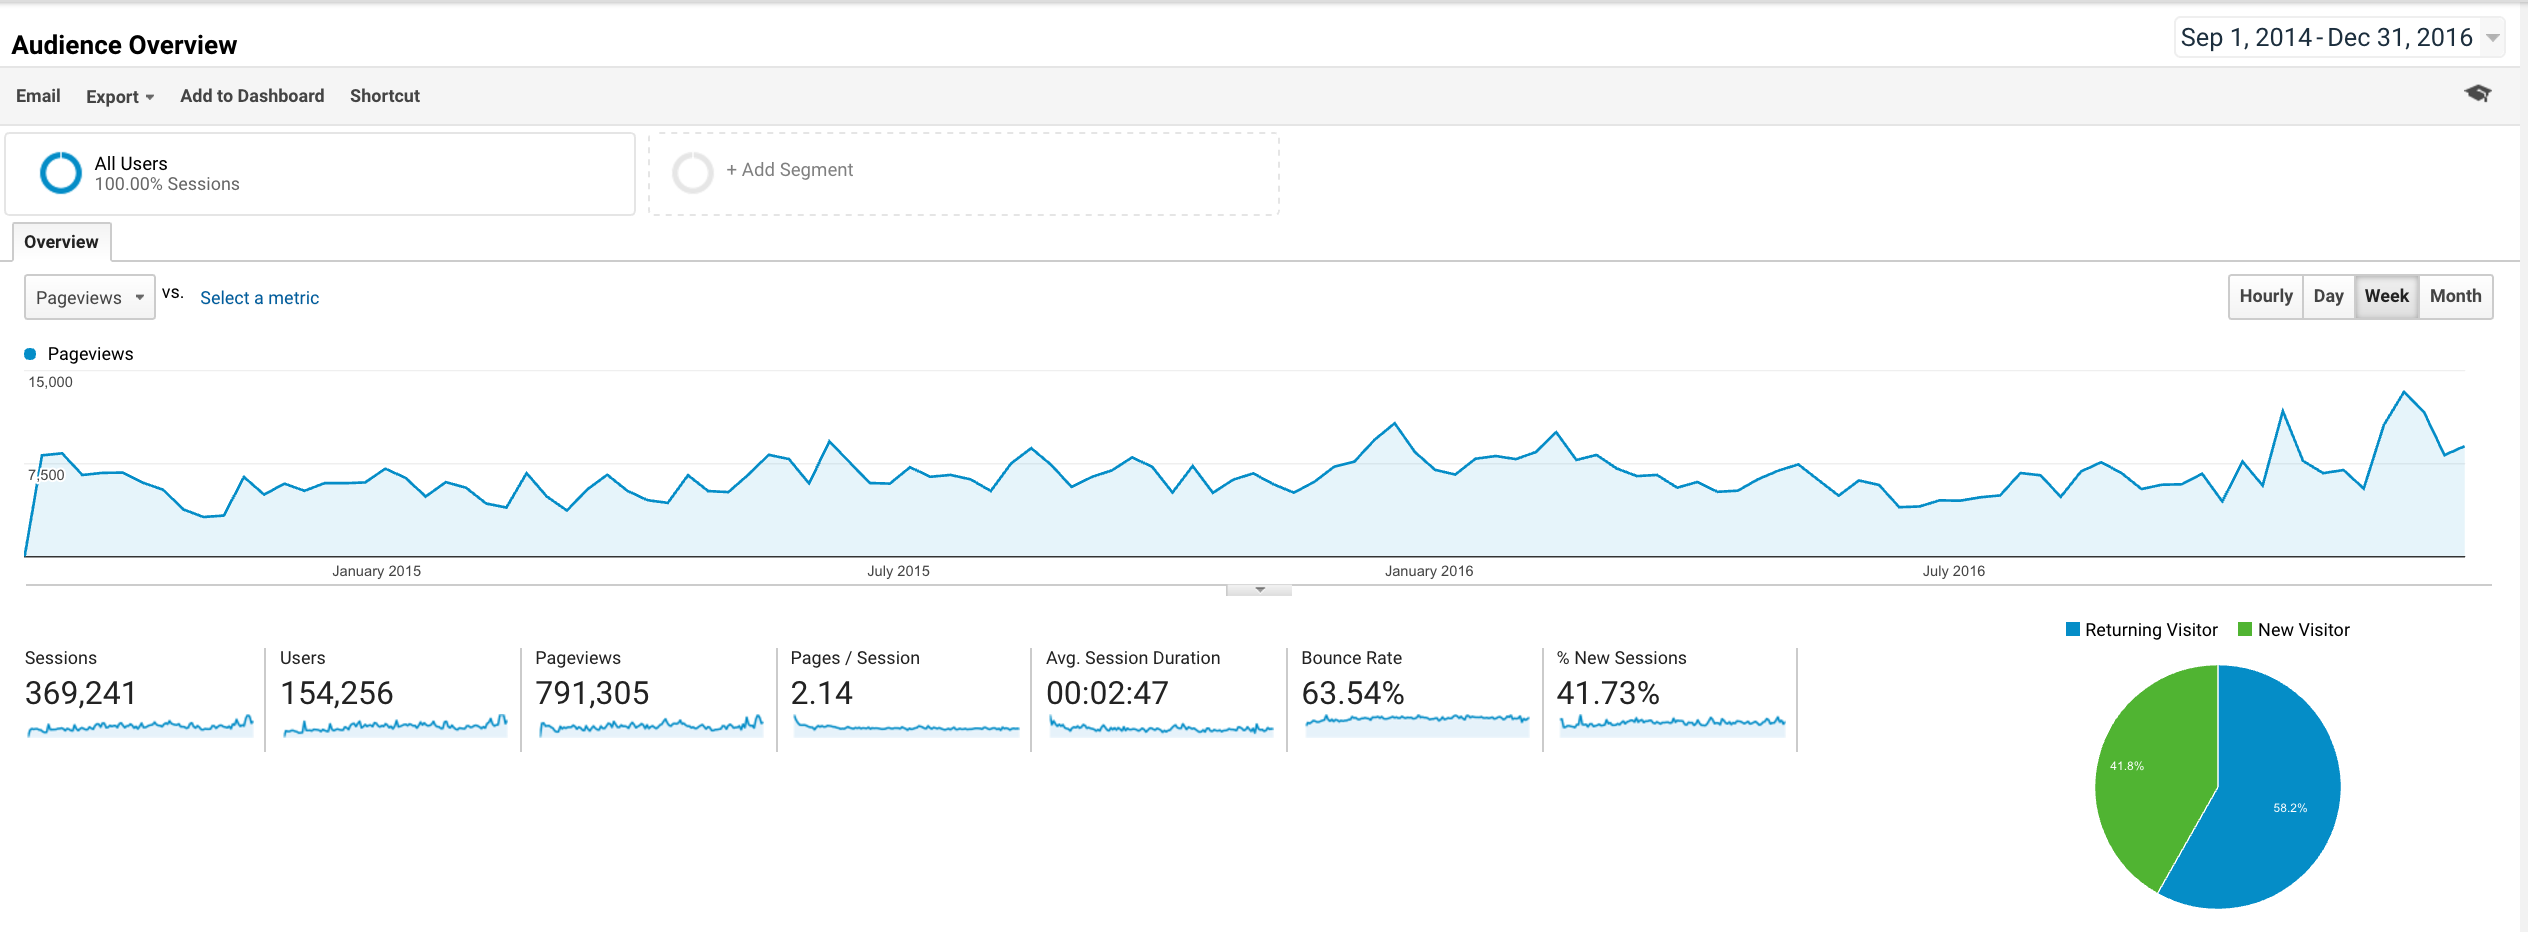 Google Analytics traffic from September 2014 to December 2016 at weekly granularity